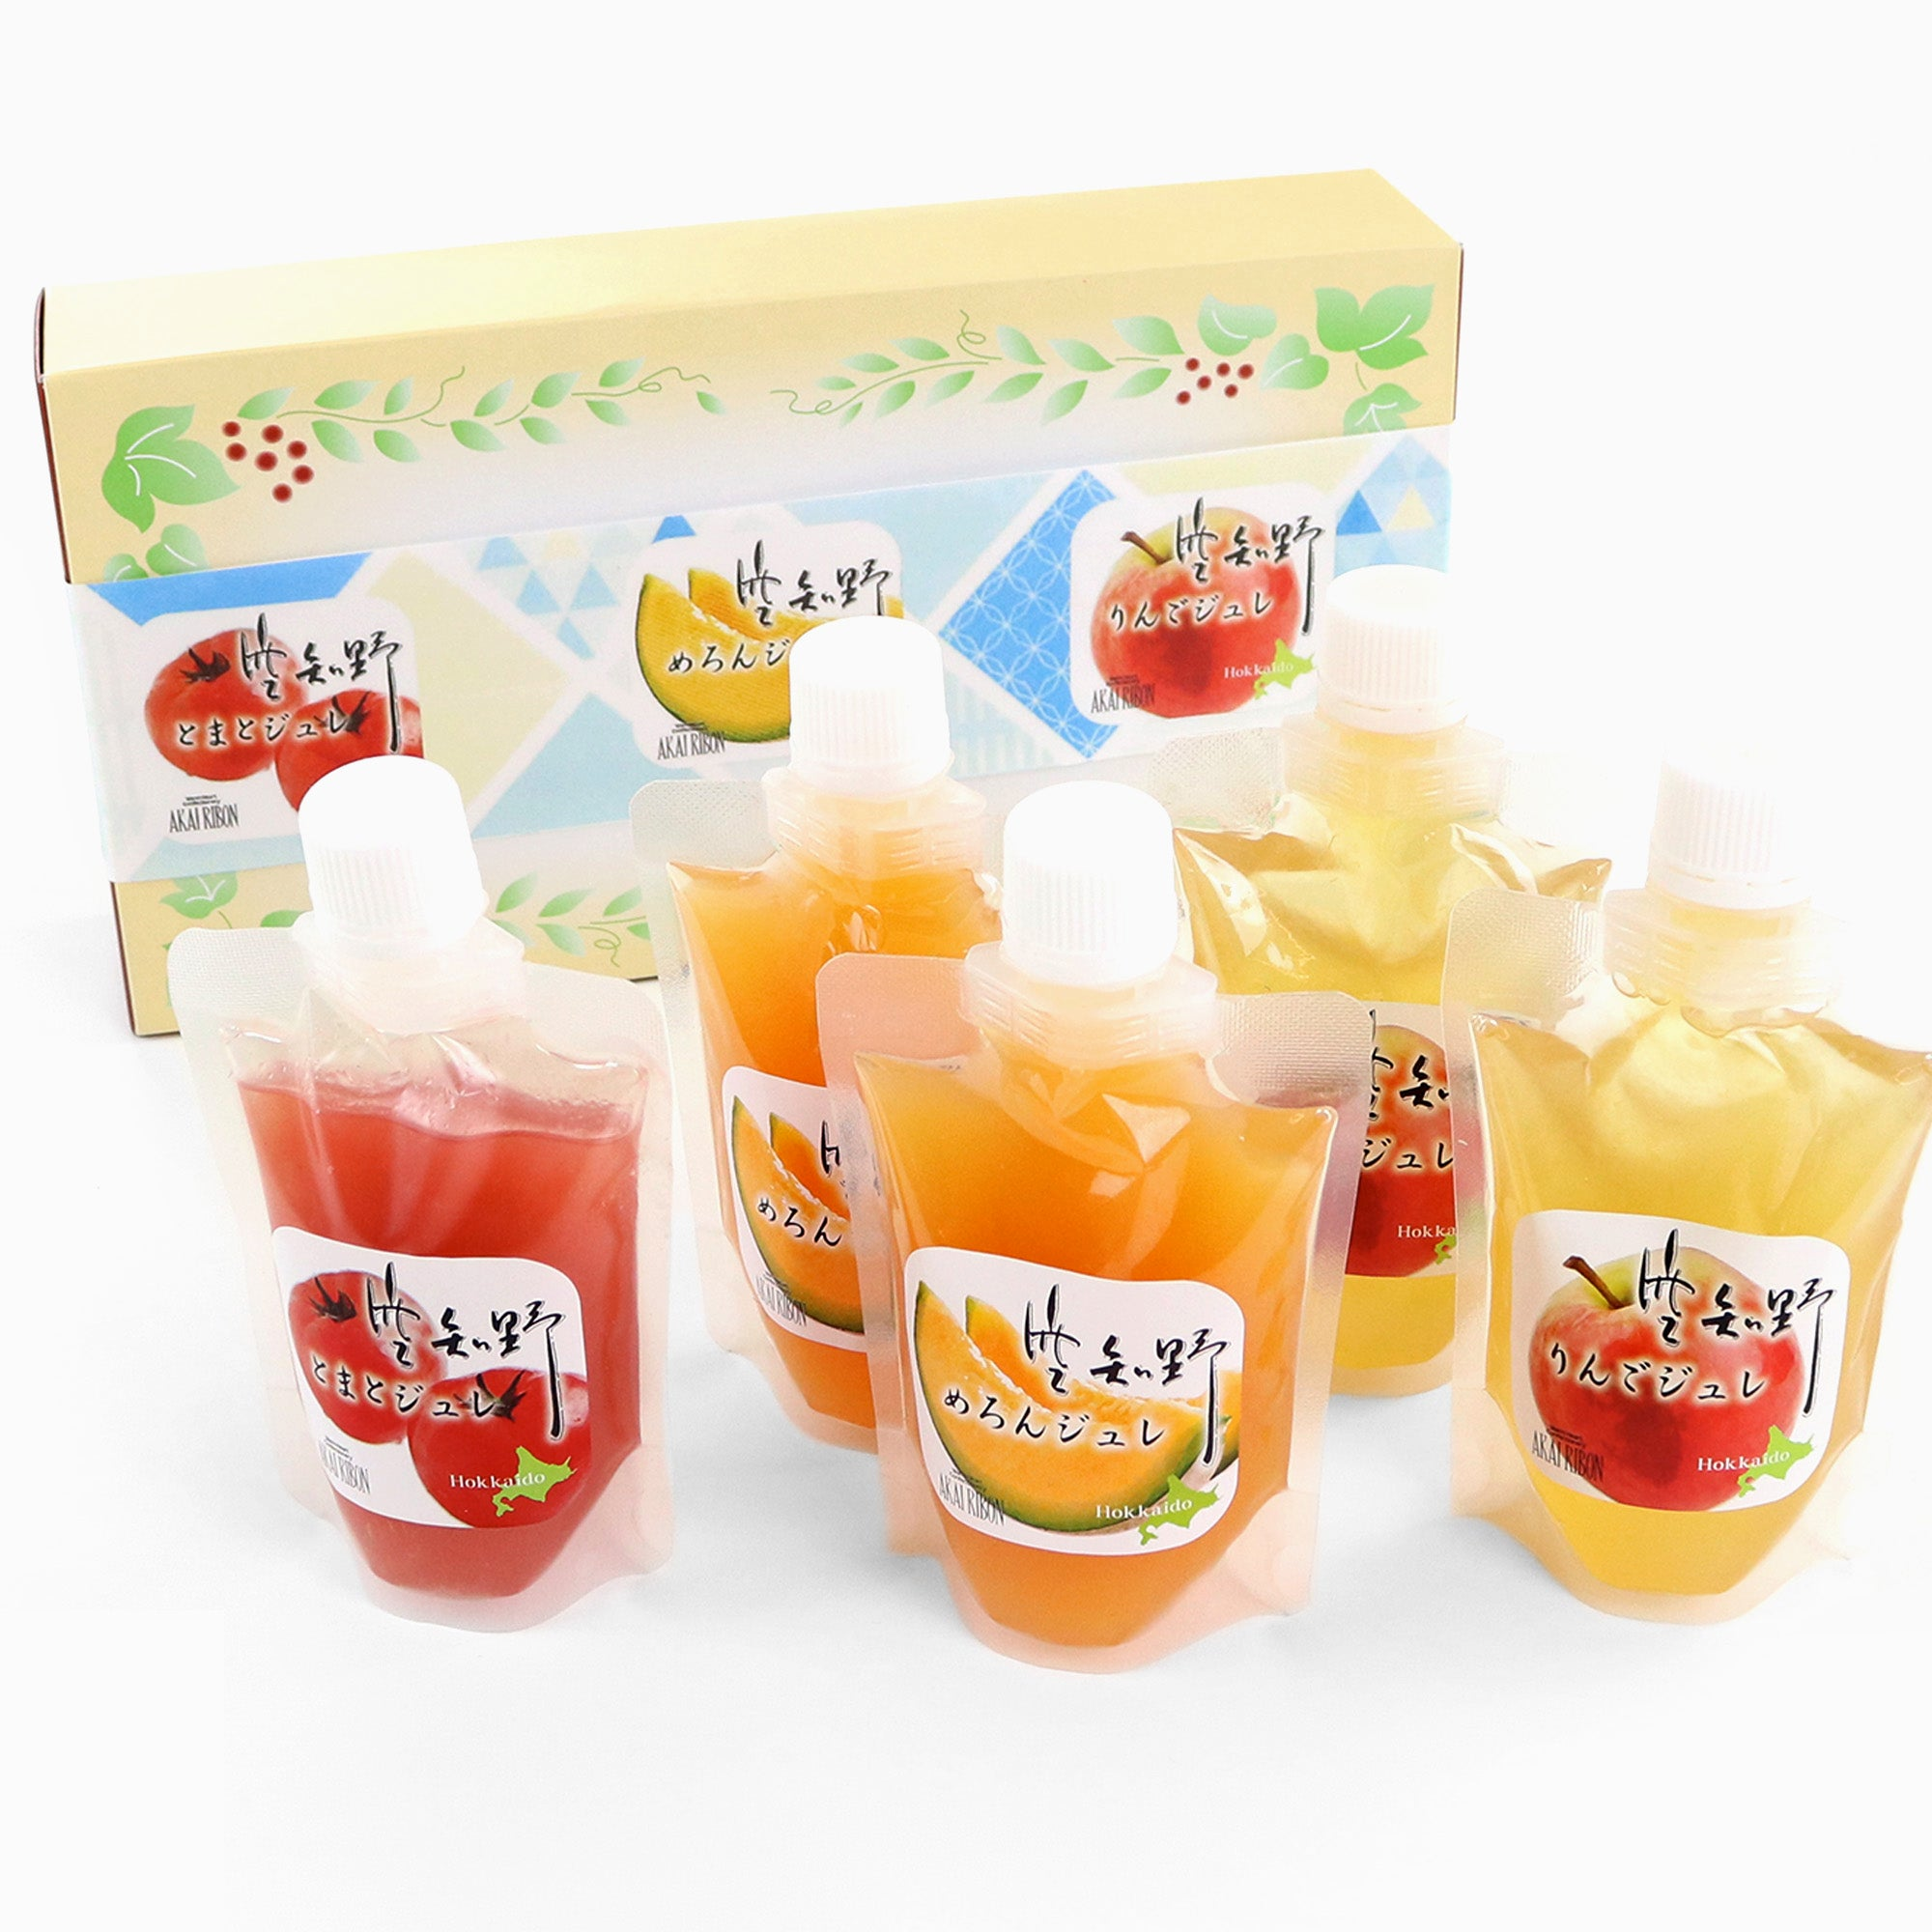 Akai Ribon Gift Box: Fruit Jellies (5 Pouches, 3 Flavors)